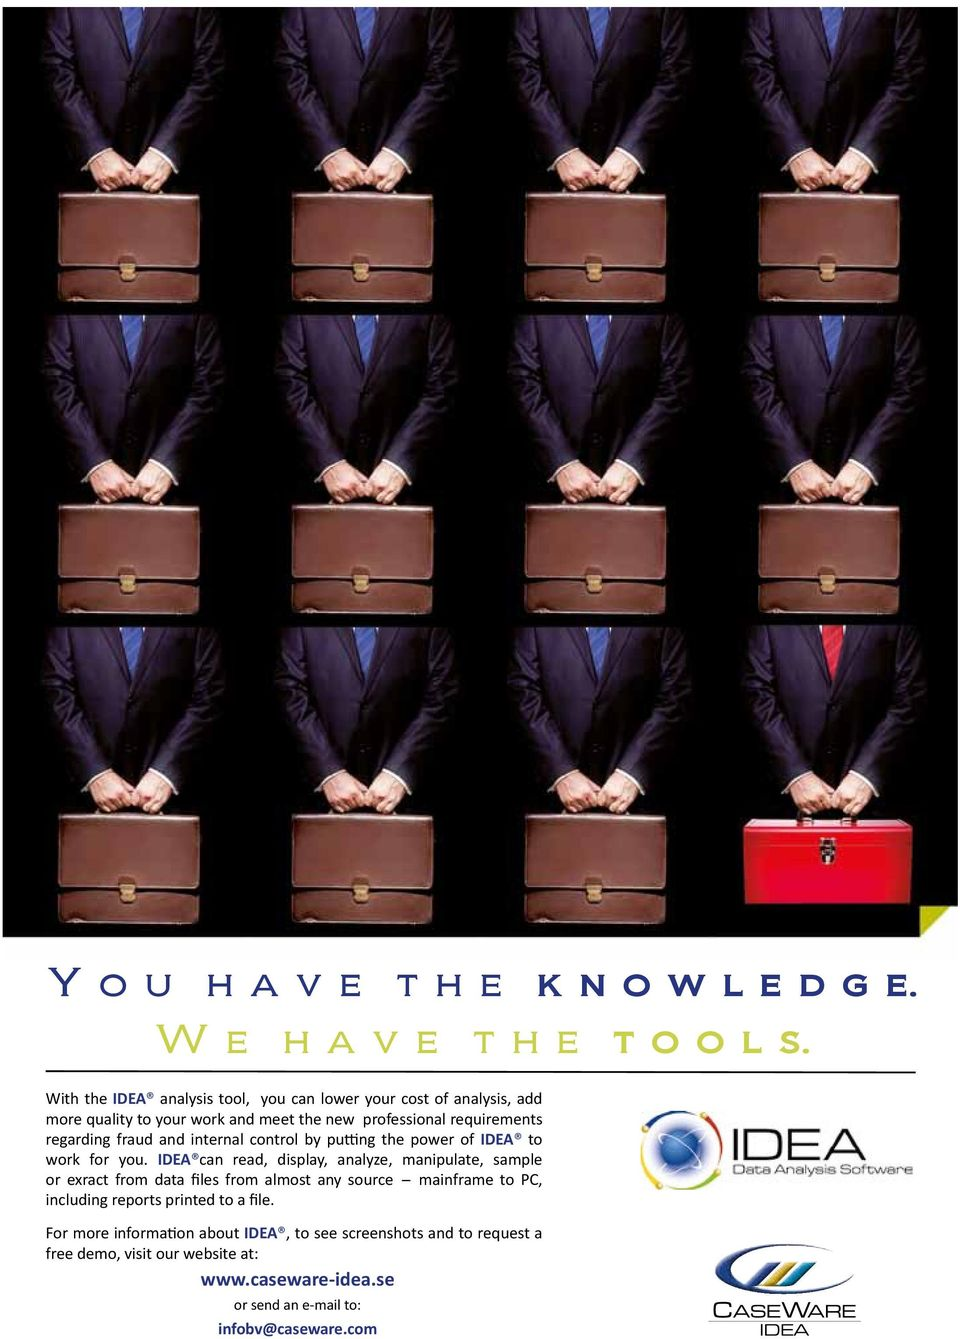 fraud and internal control by putting the power of IDEA to work for you.